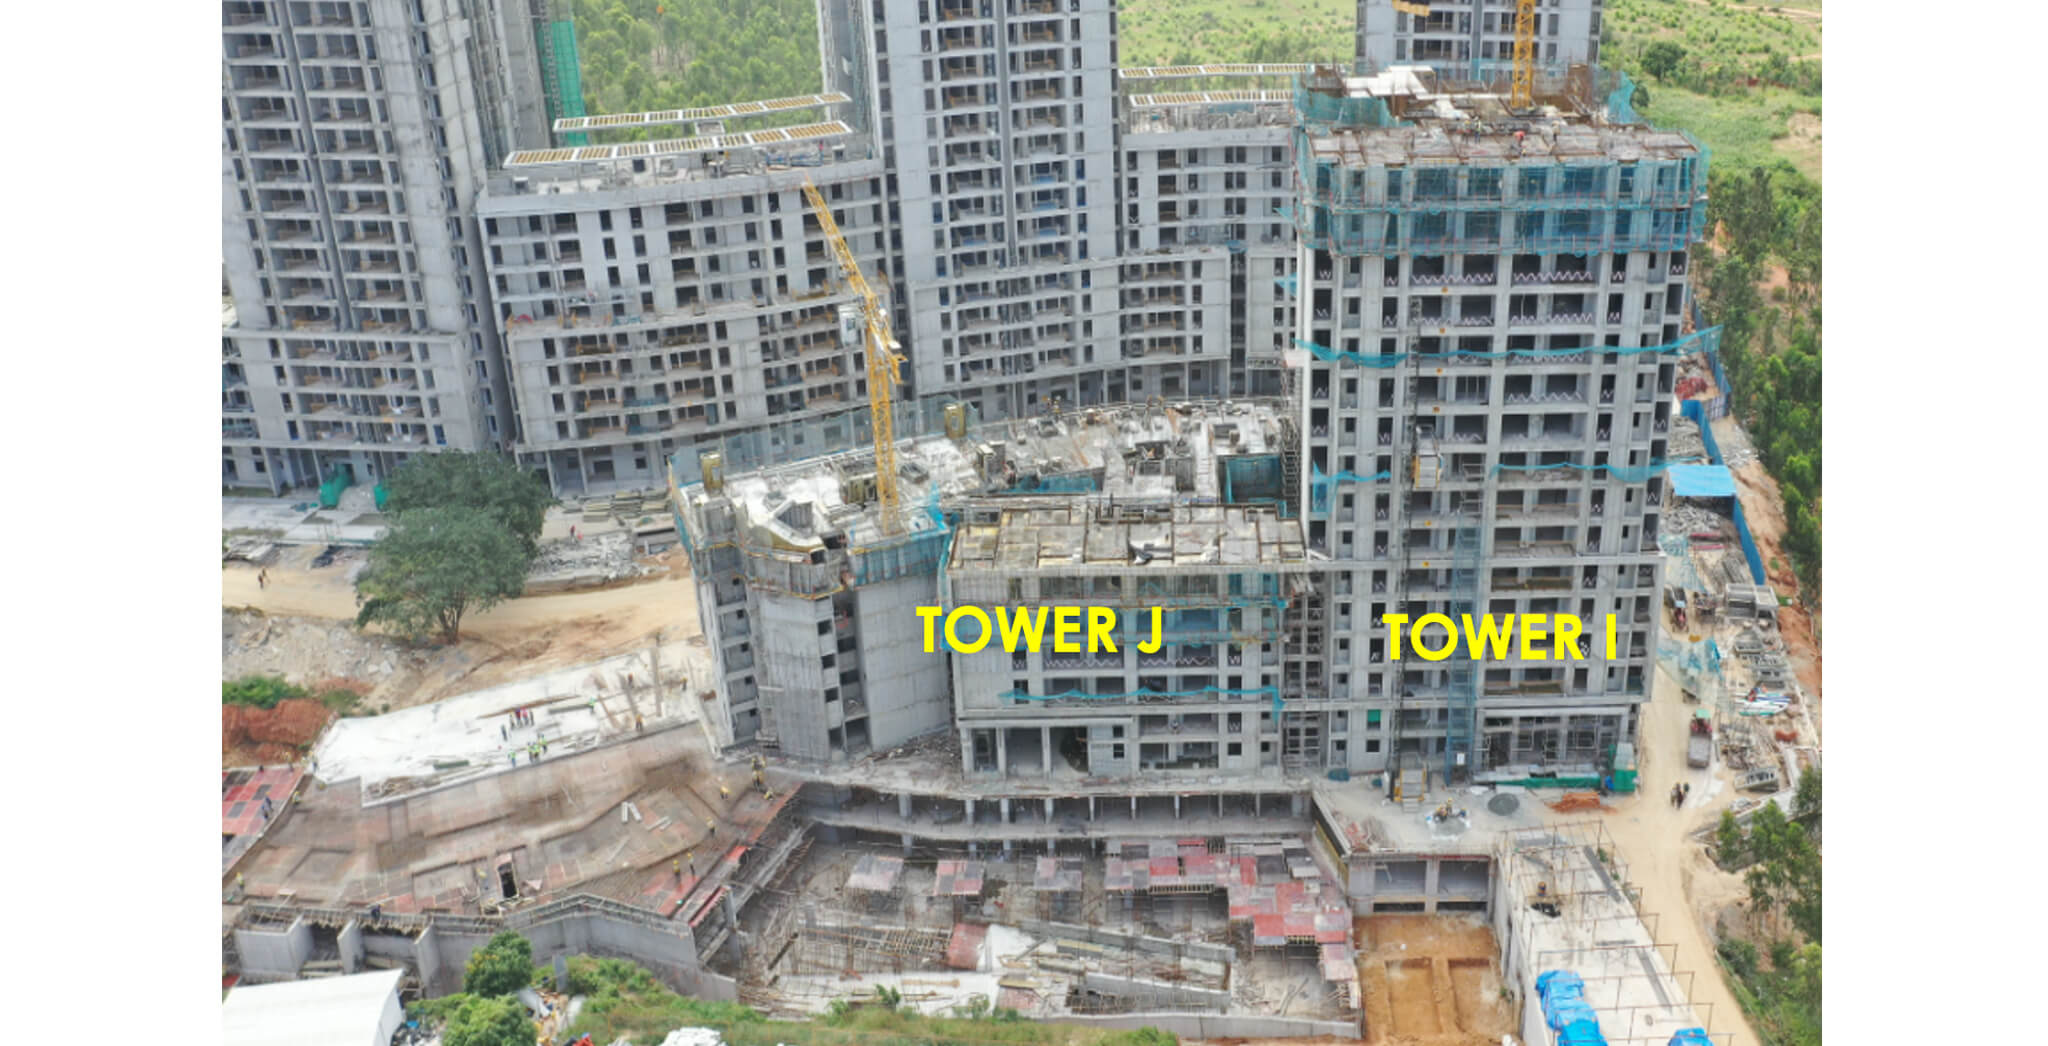 Aug 2021 - Halcyon Overall view: Tower I – 17th Floor structure works in progress. Tower J – 7th Floor structure works in progress